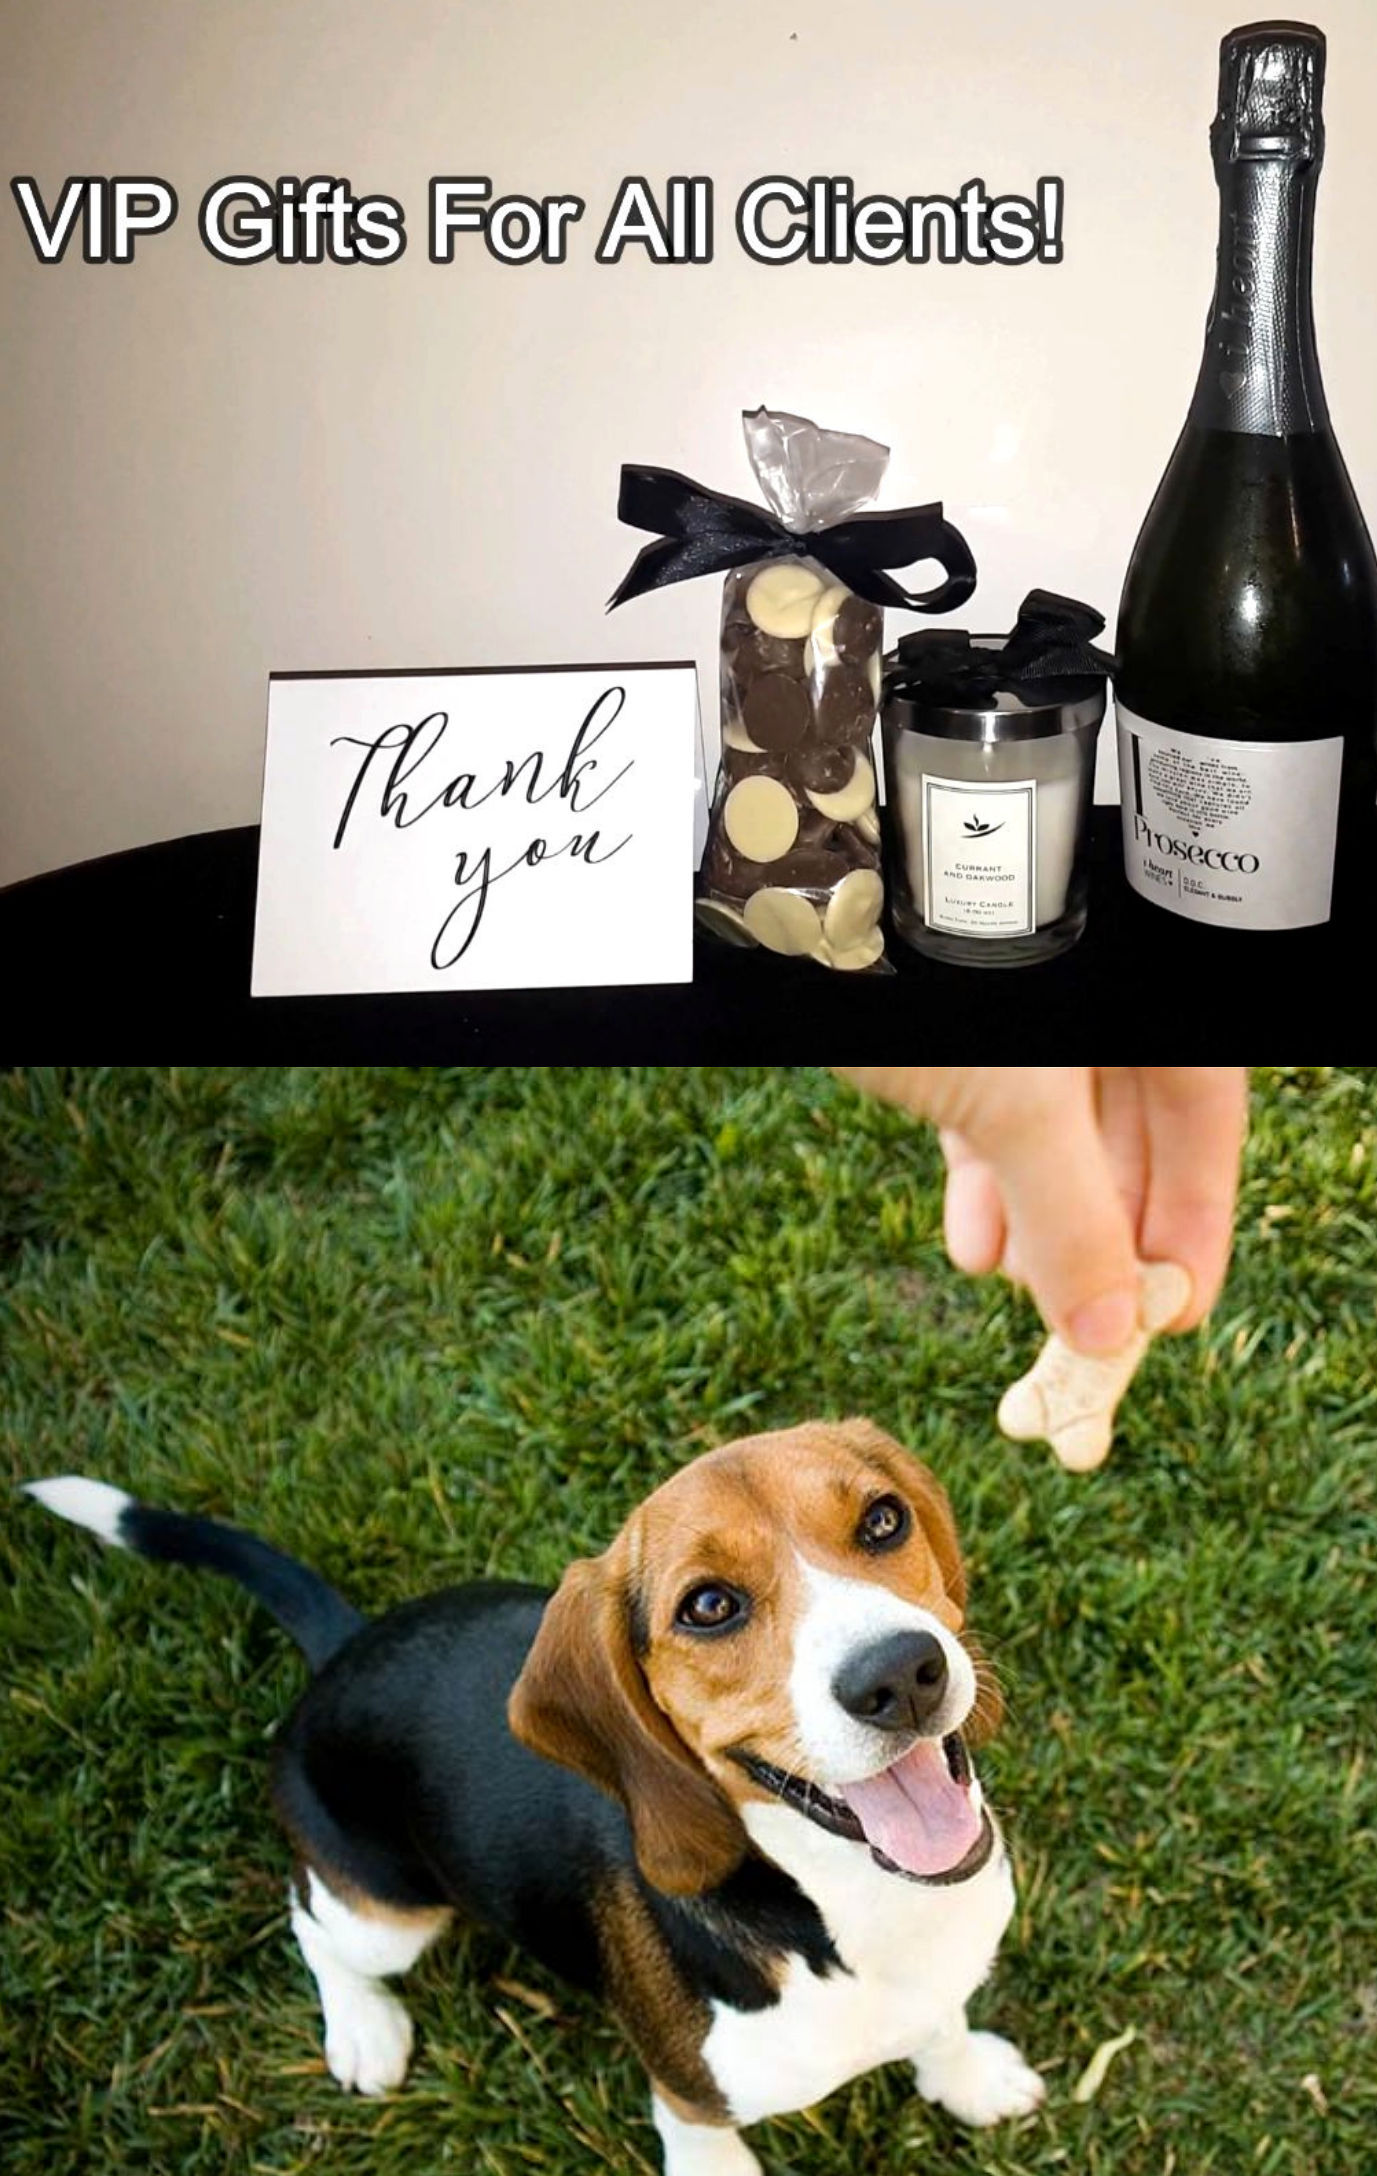 vip gifts for clients and pets